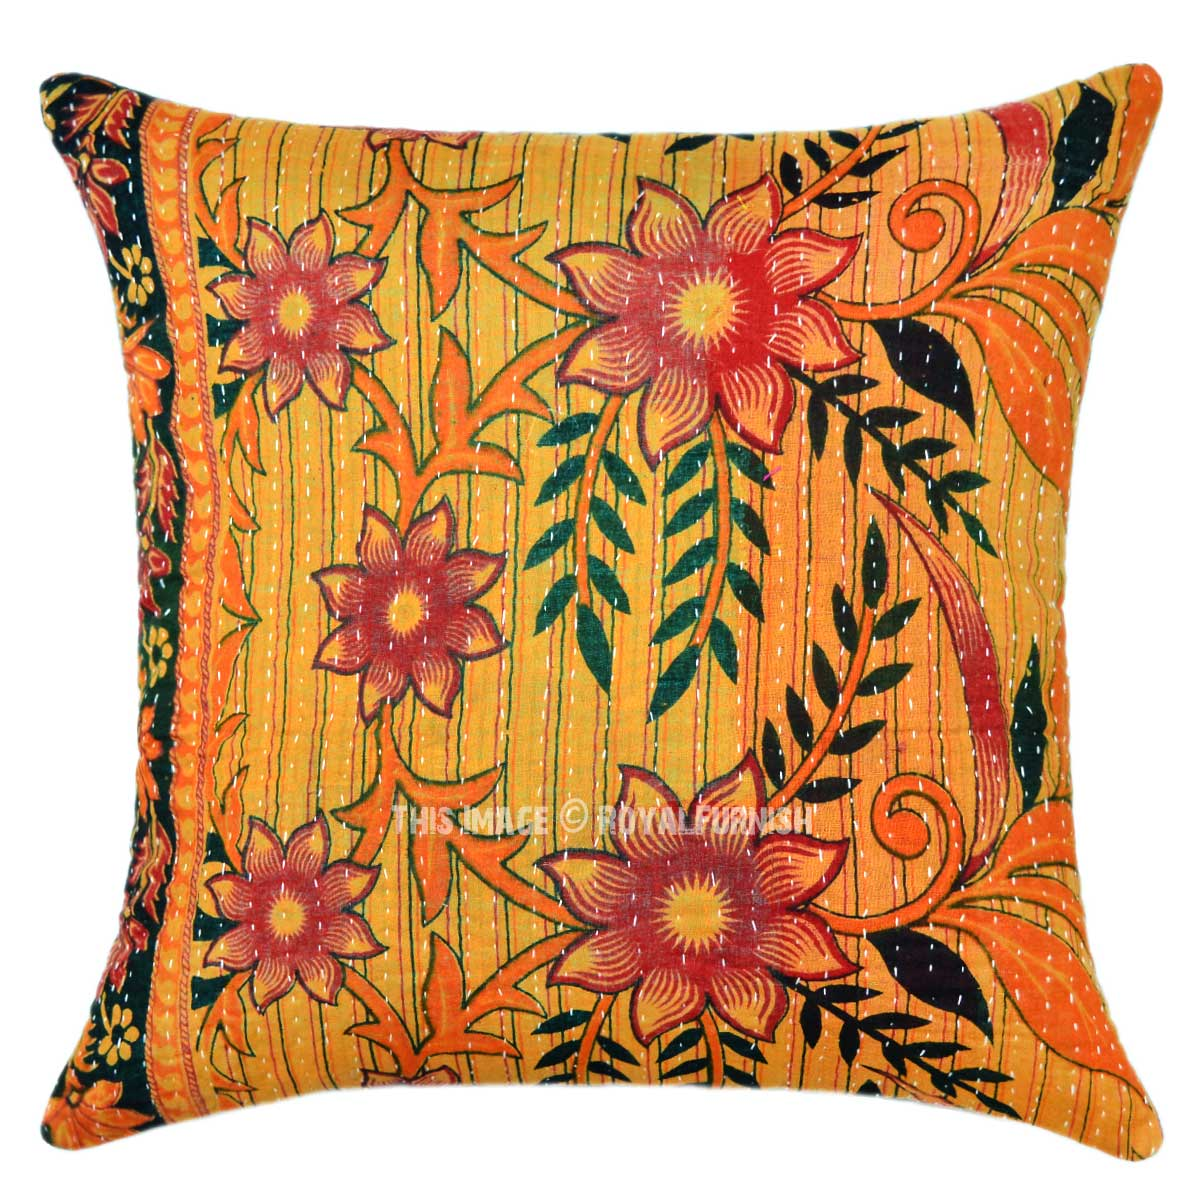 Orange Multi Flower Plant Decorative Vintage Kantha Throw Pillow Sham - RoyalFurnish.com